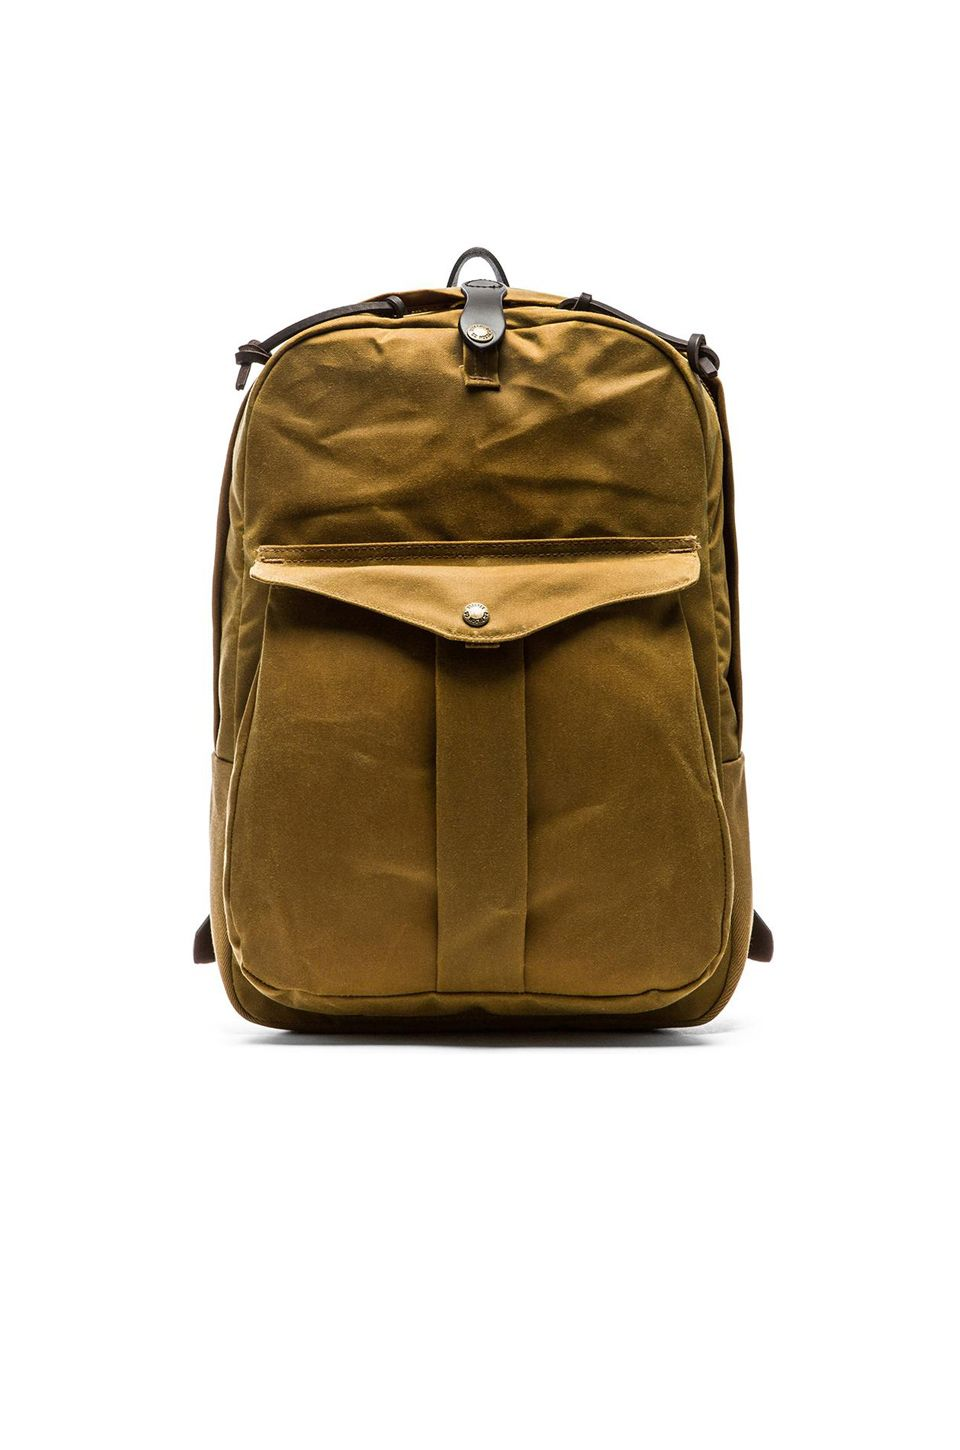 73261728b361 Filson Journeyman Backpack in Tan -- SO CUTEEEEEE